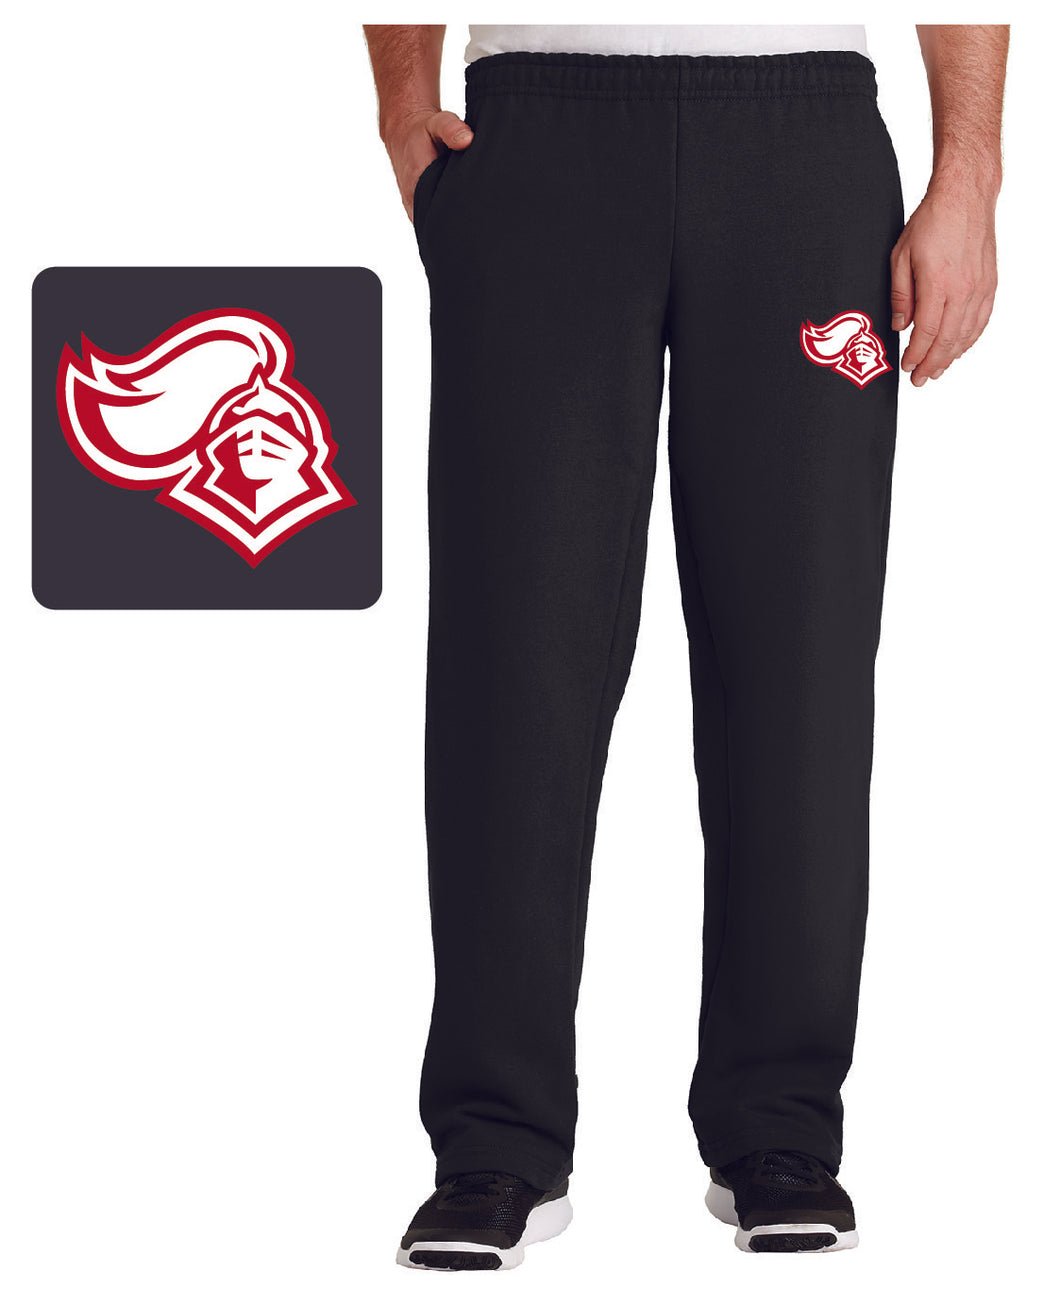 KNIGHTS Black Open Bottom Sweatpant